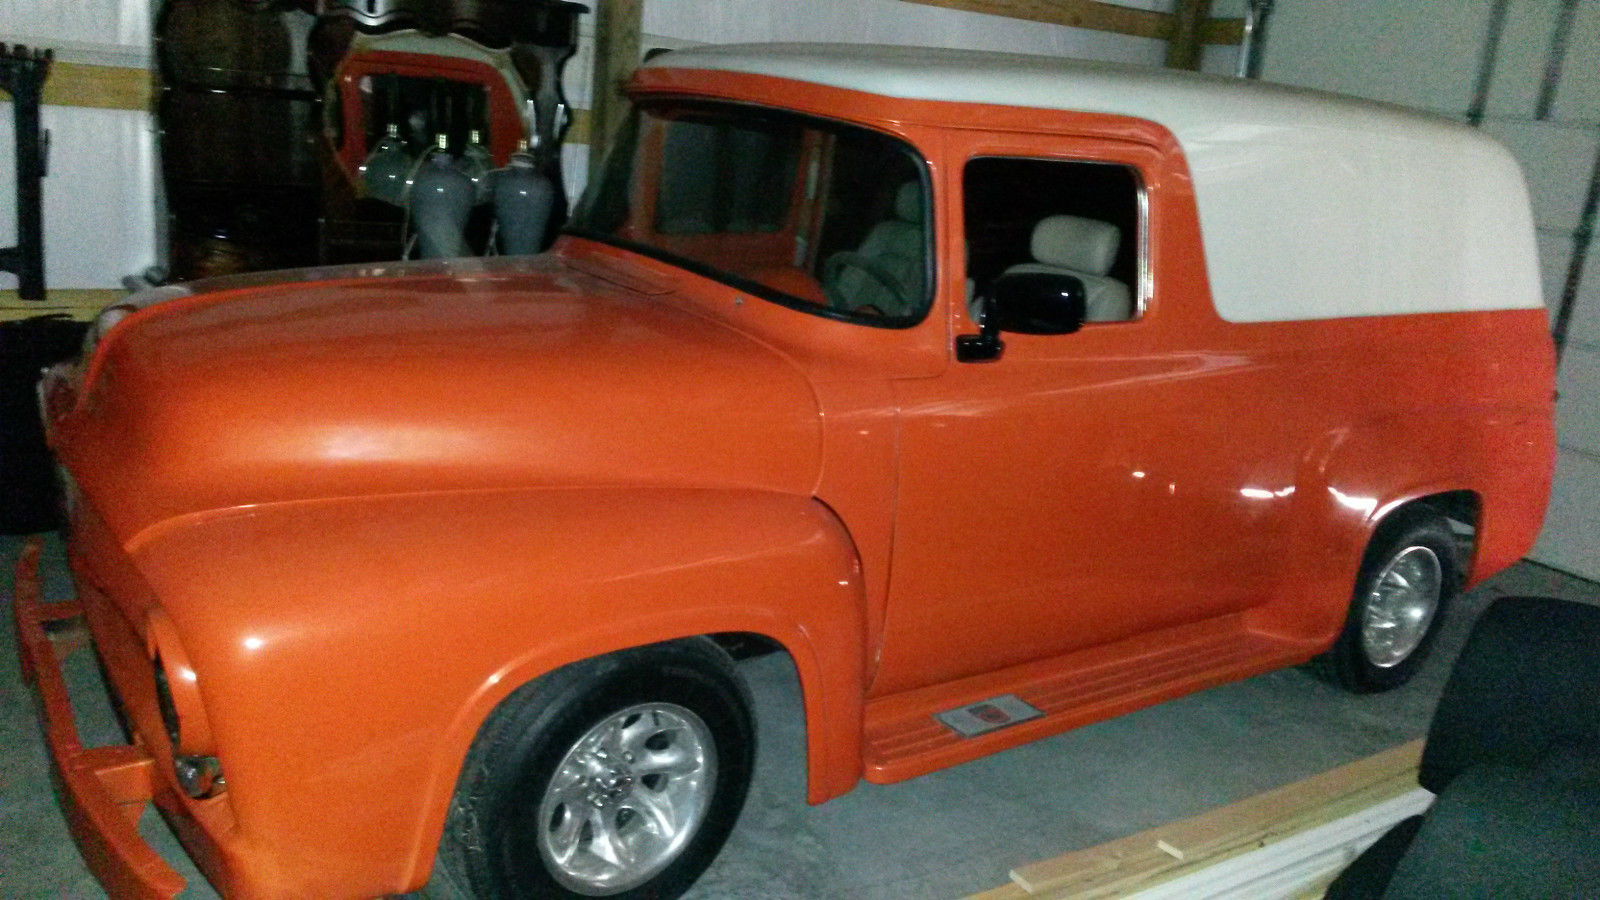 1956 ford f100 panel truck for sale in big stone gap virginia united states. Black Bedroom Furniture Sets. Home Design Ideas